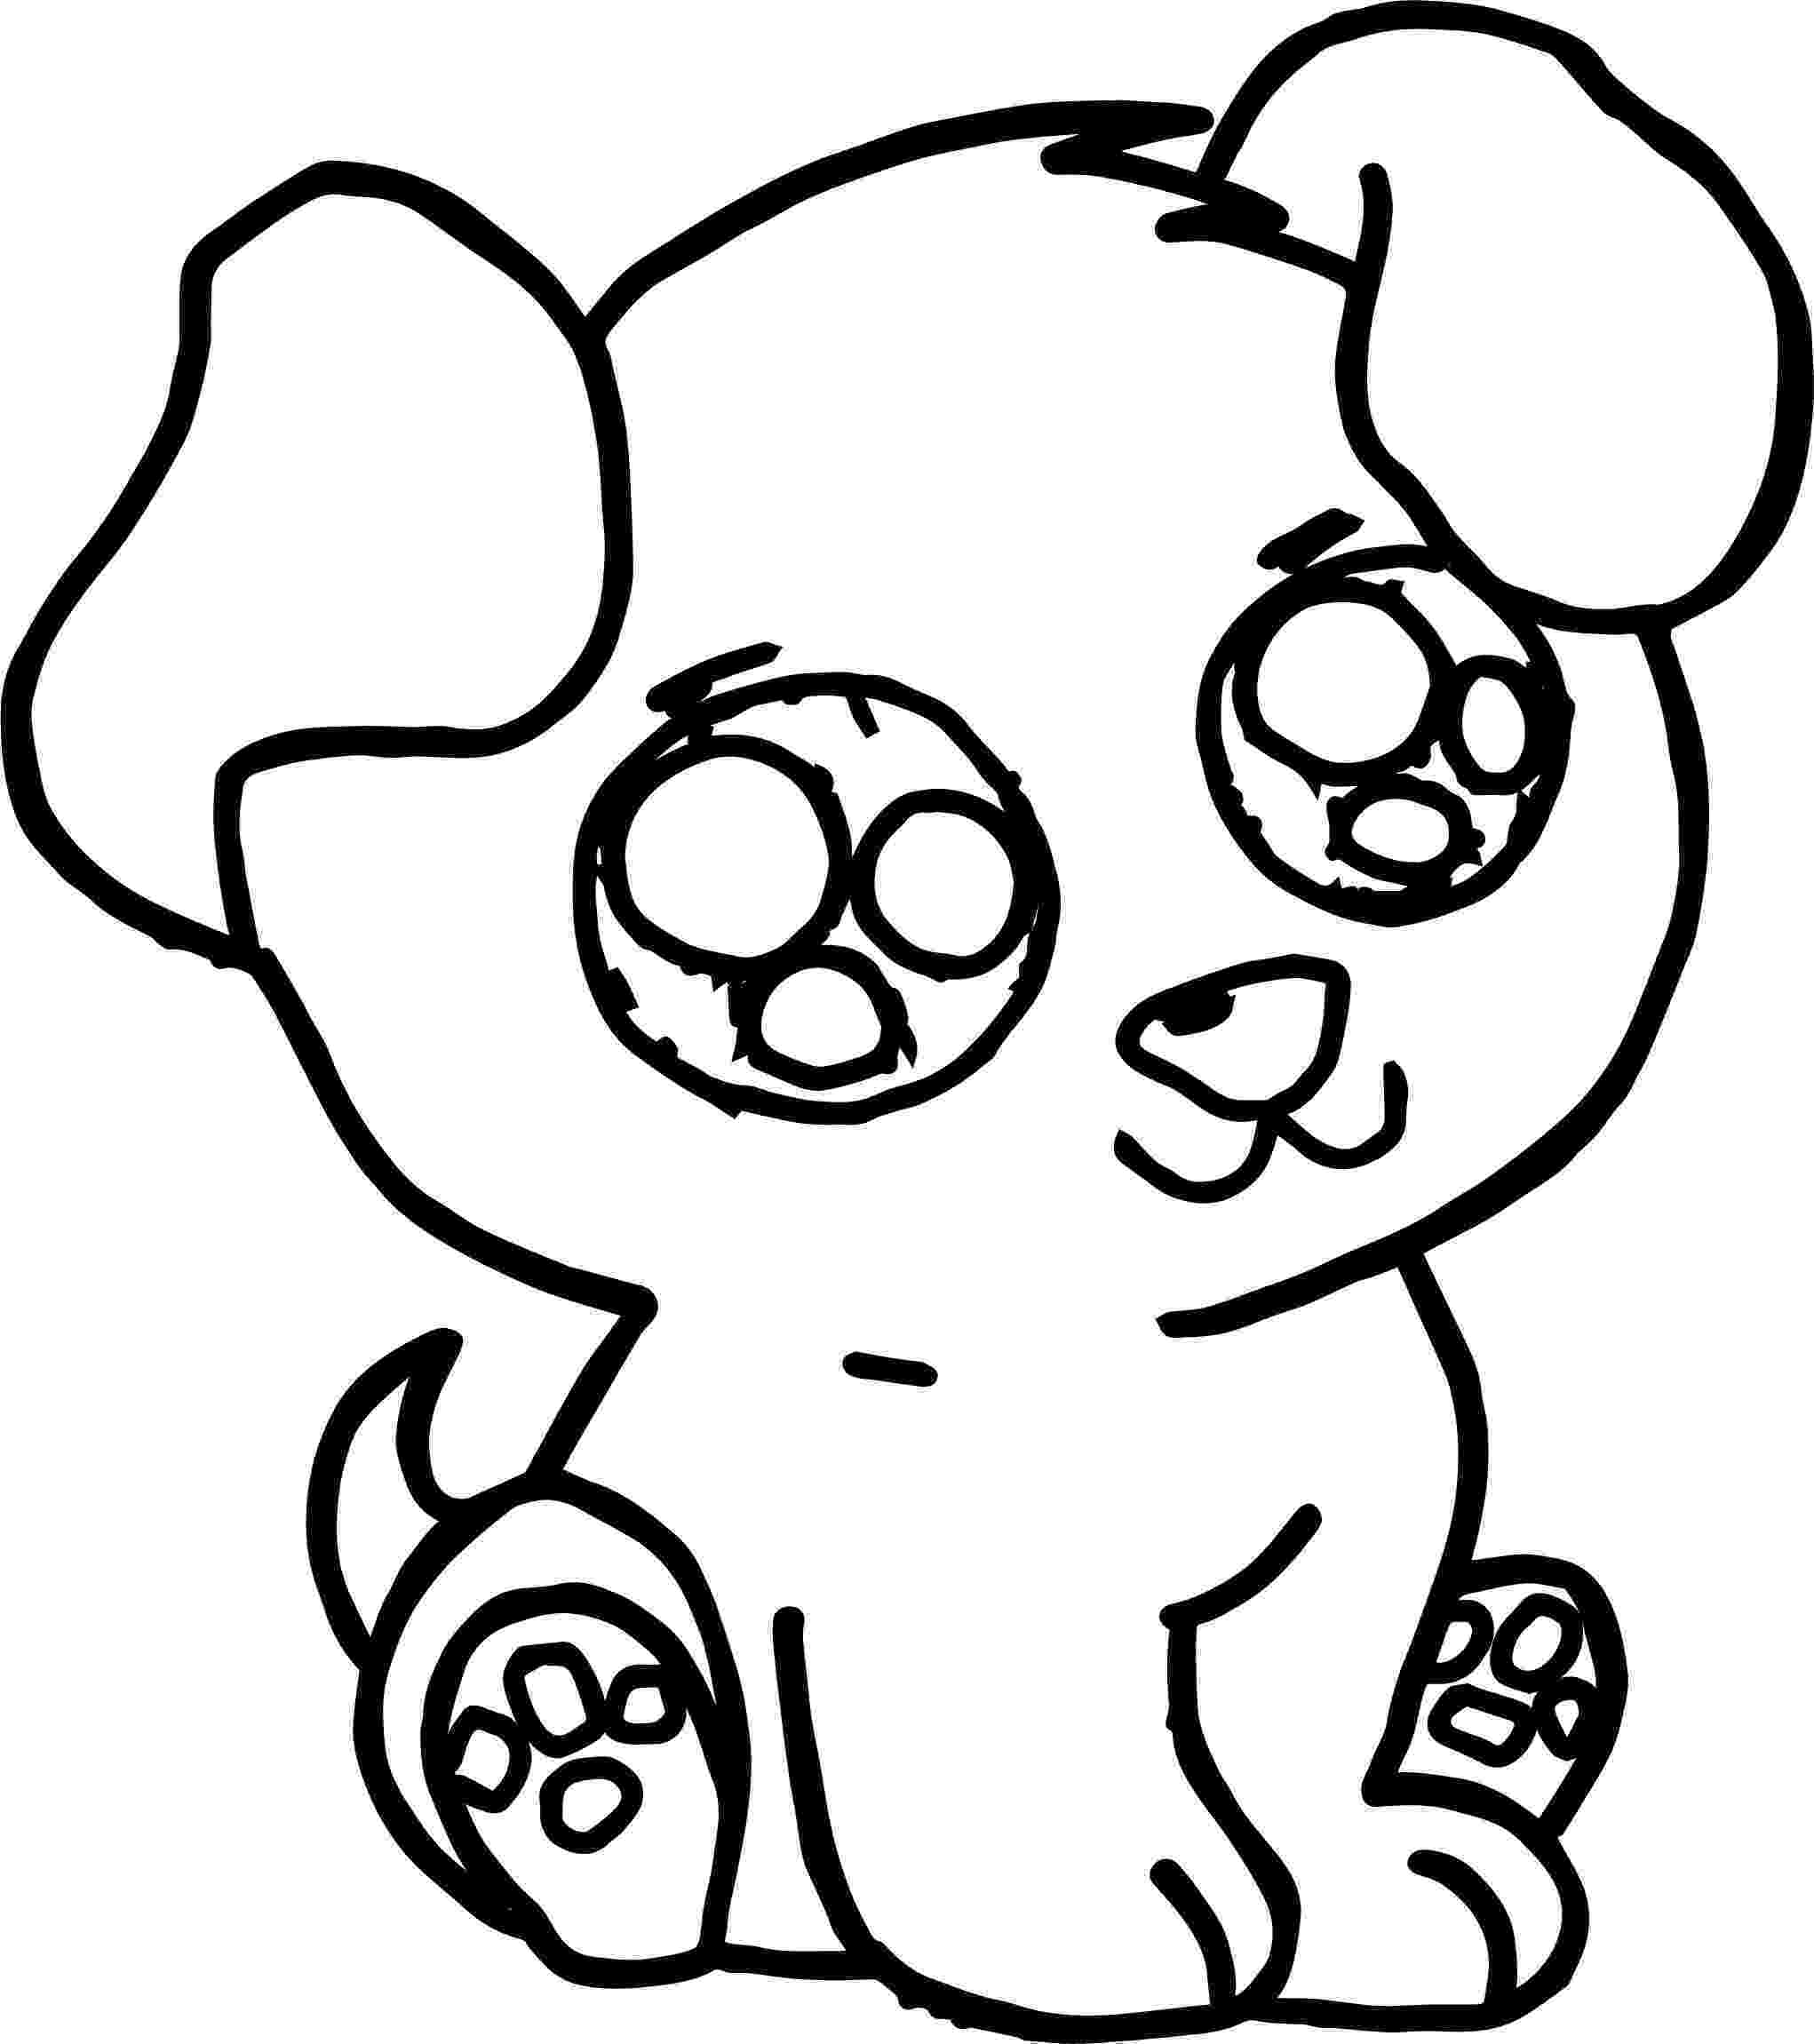 cute dogs coloring pages cute dog coloring pages getcoloringpagescom coloring cute dogs pages